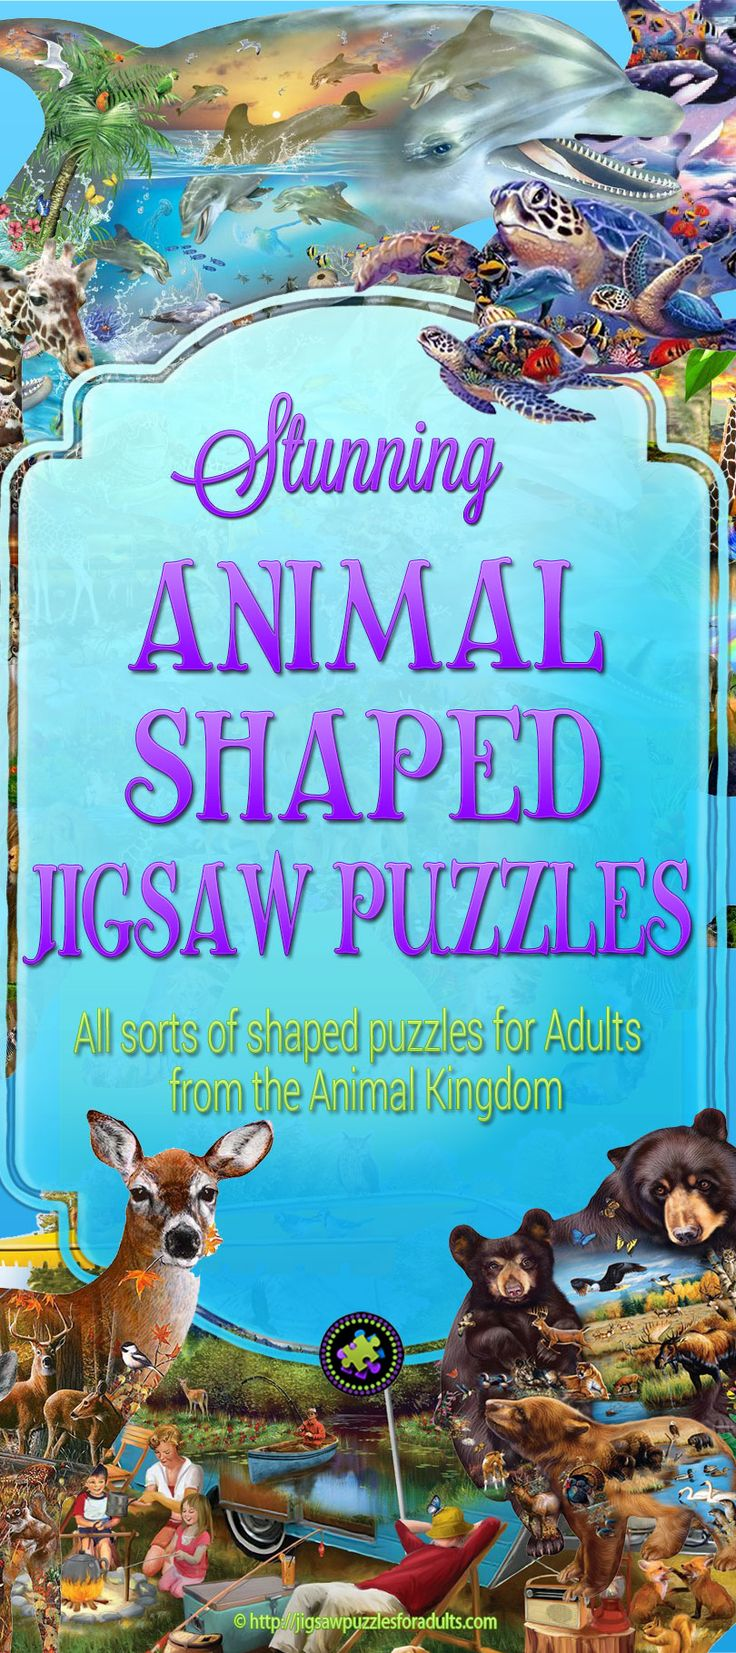 Absolutely LOVE these unique animal shaped jigsaw puzzles! These jigsaw puzzles are shaped like animals from the Animal Kingdom. Whether you are looking for lions, tigers, elephants, or other African animals, you'll find amazing animal jigsaw puzzles on this page. Not into African animals you also find farm animals, forest animals, and even your favorite underwater animals. Sot there is lots to choose from. Buy one of these animal shaped puzzles for a bit of challenging enjoyment.